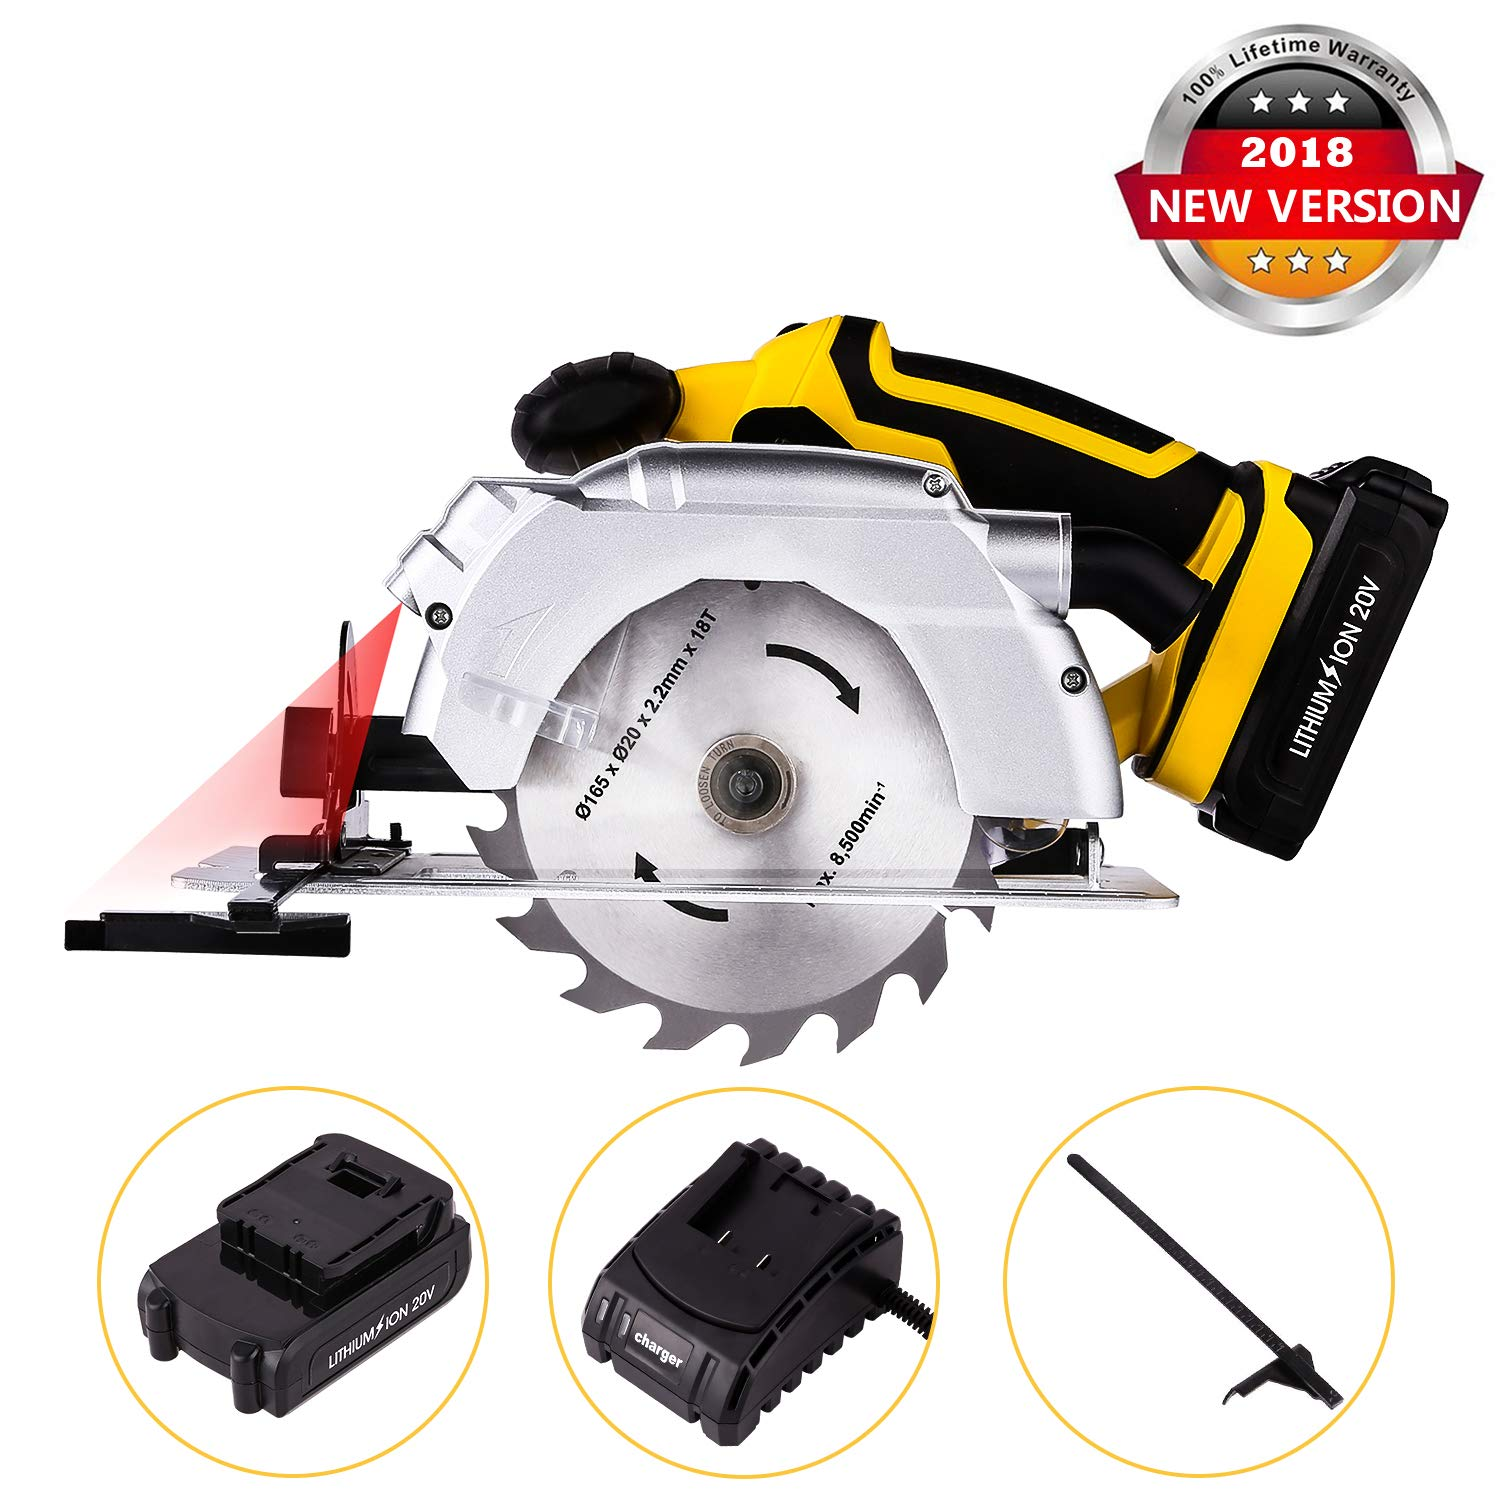 Coocheer 20V 6-1/2'' Portable Cordless Circular Saw with Laser Guide, Lightweight Safety Guard, 7000 rpm Max Speed Easy for Cutting Wood, Li-ion Battery and Charger Adapter Included